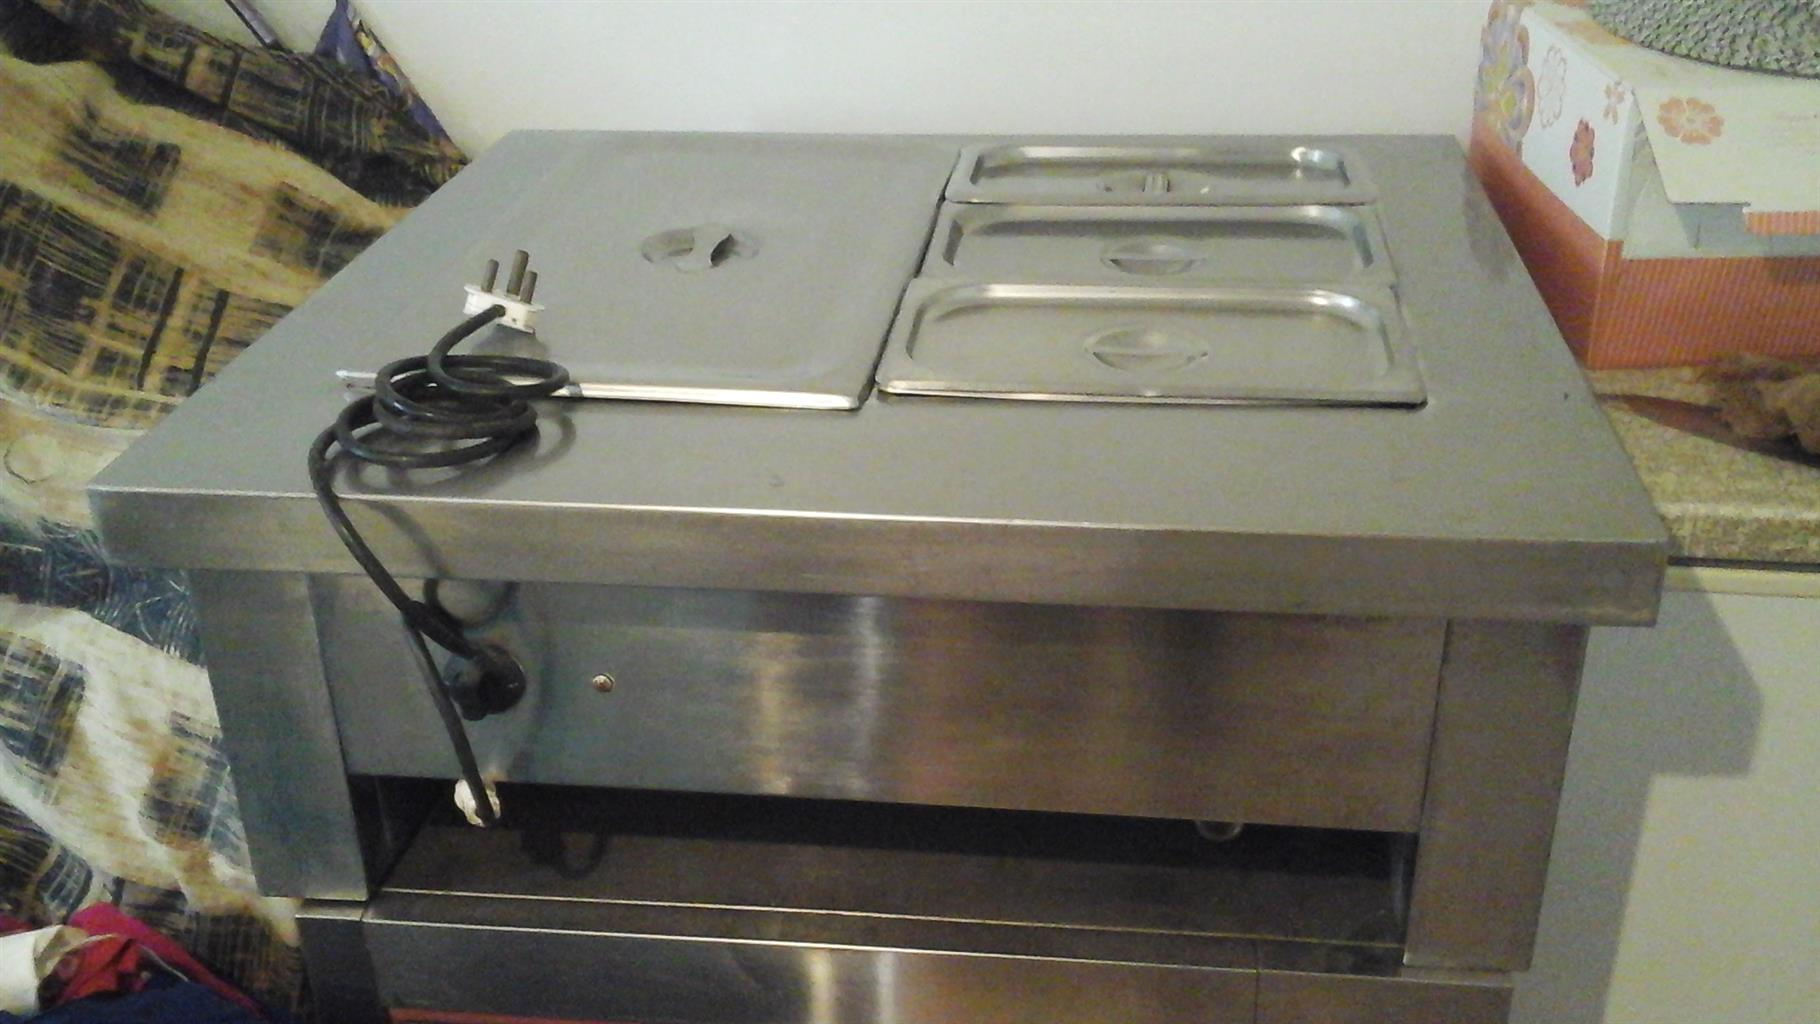 Electrict food warmer (Shafing dish) with 4 containers in one.